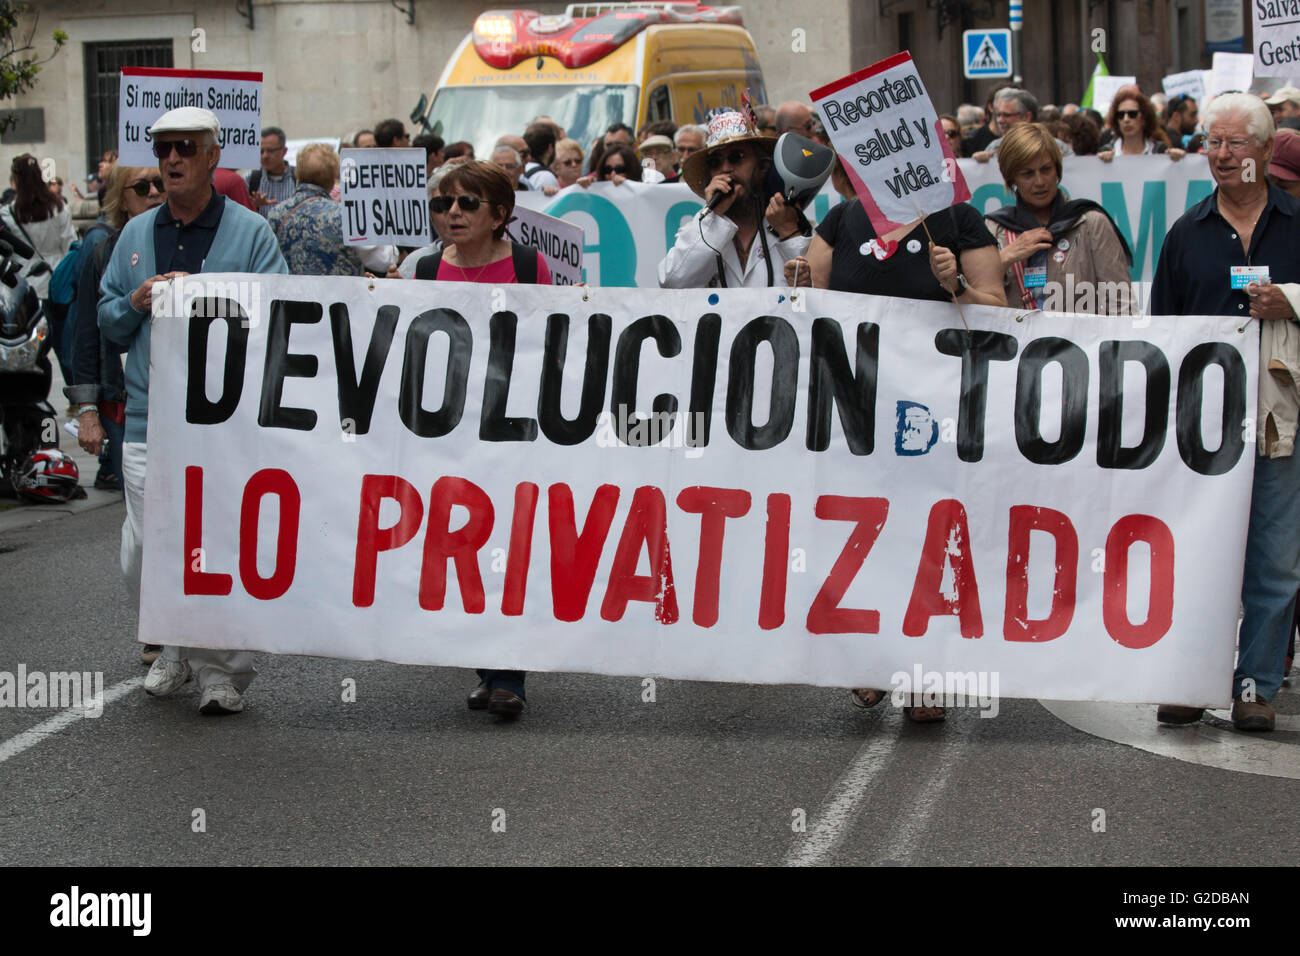 Madrid, Spain. 28th May, 2016. A banner that says 'Turn Back all the privatized' during march in Madrid. - Stock Image